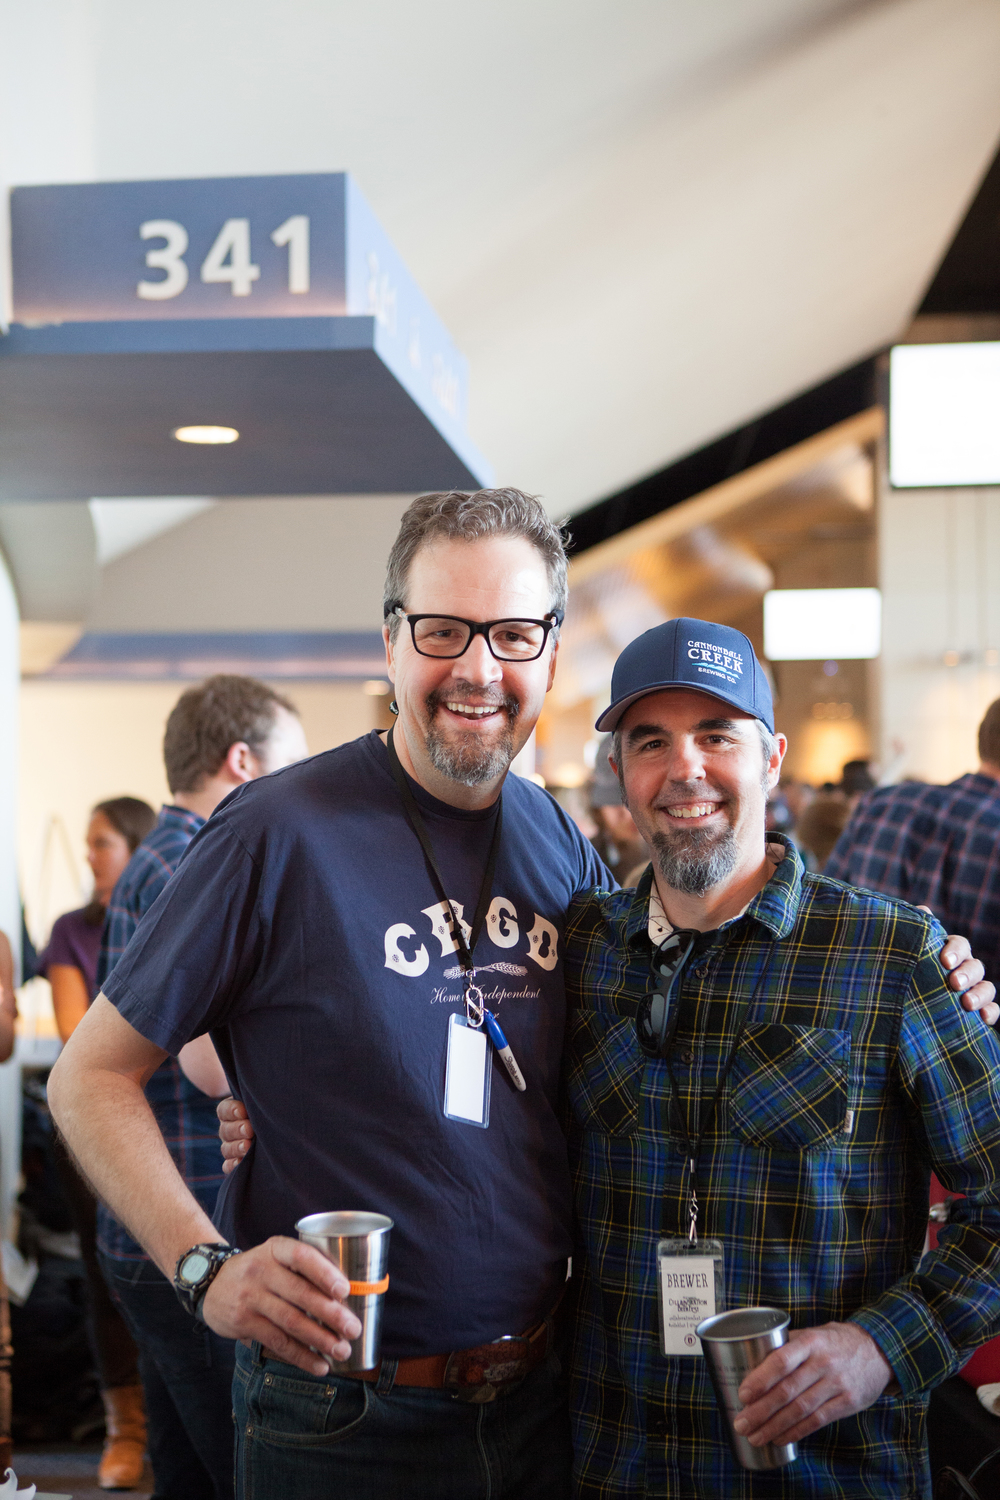 John Carlson, executive director of the Colorado Brewers Guild, and Brian Hutchinson, co-owner of Cannonball Creek Brewing Company in Golden, are just some of the 2,200 guests that attended the festival at Sports Authority Field at Mile High Stadium.